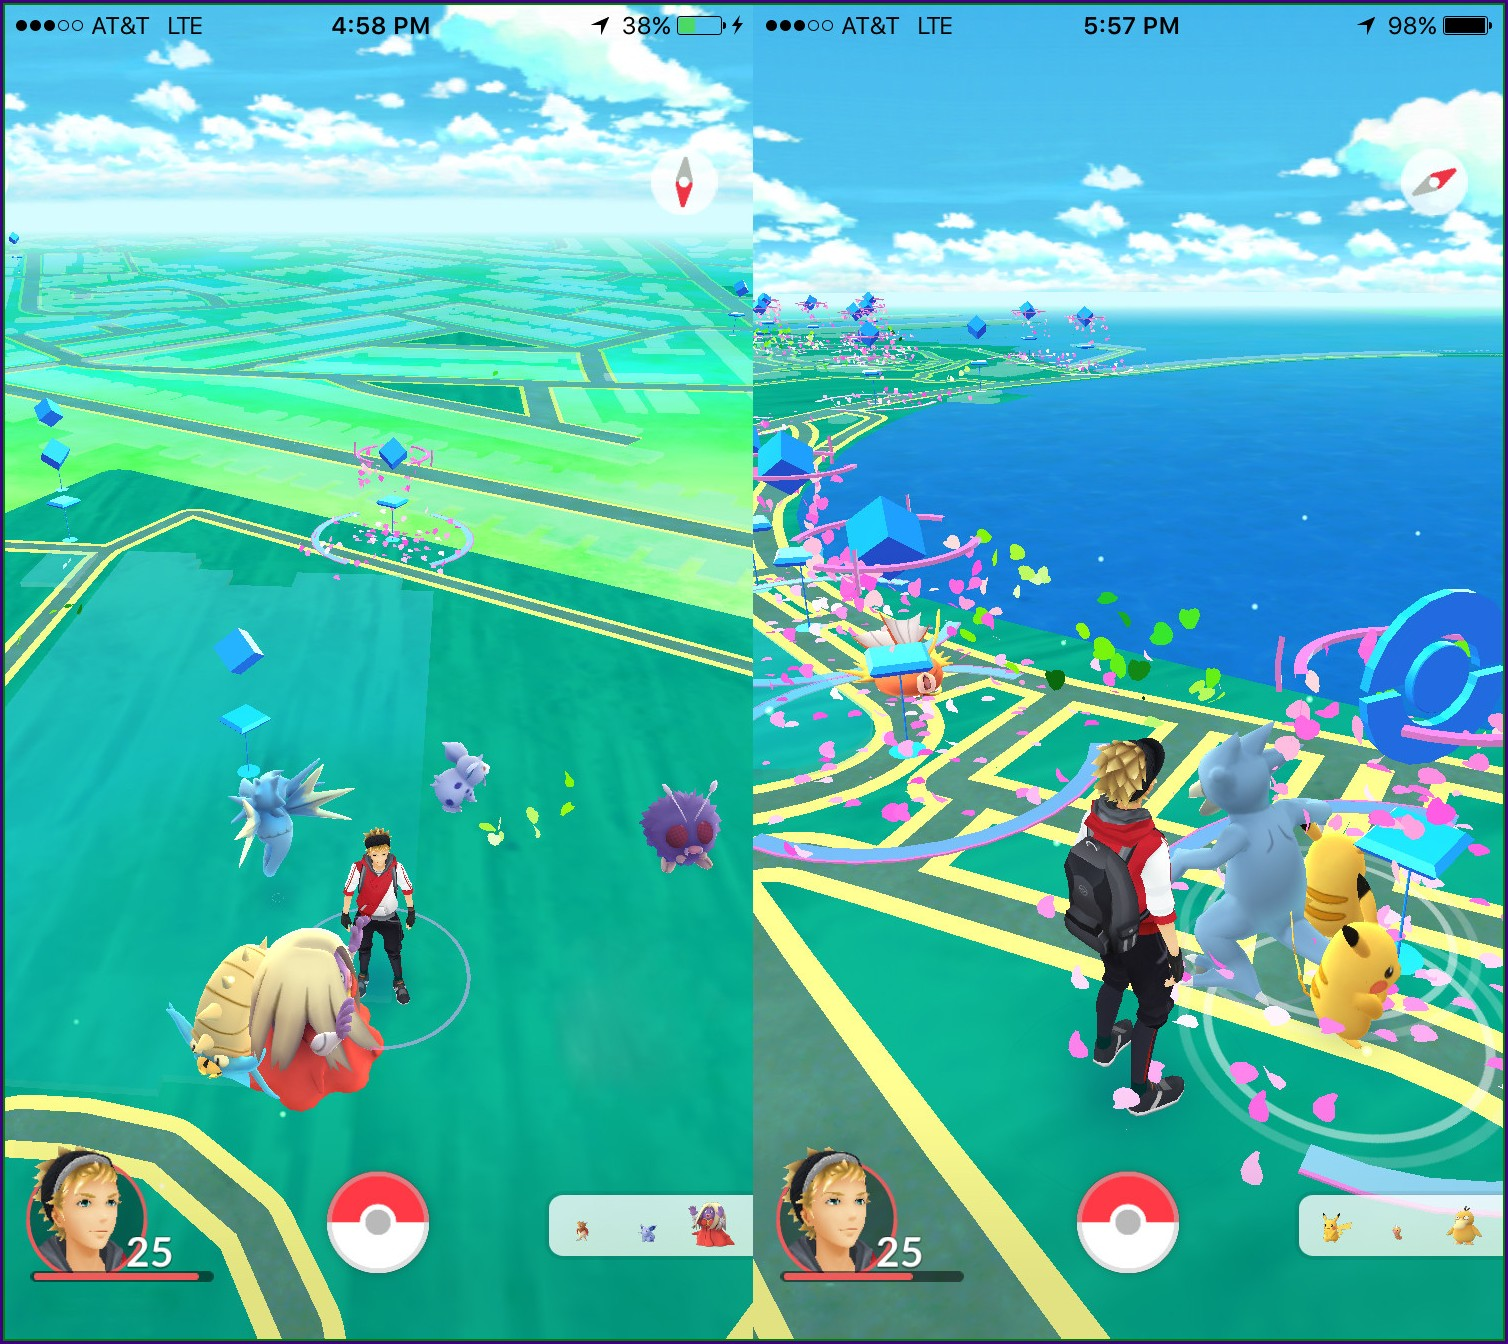 San Francisco Pier 39 Pokemon Go Map